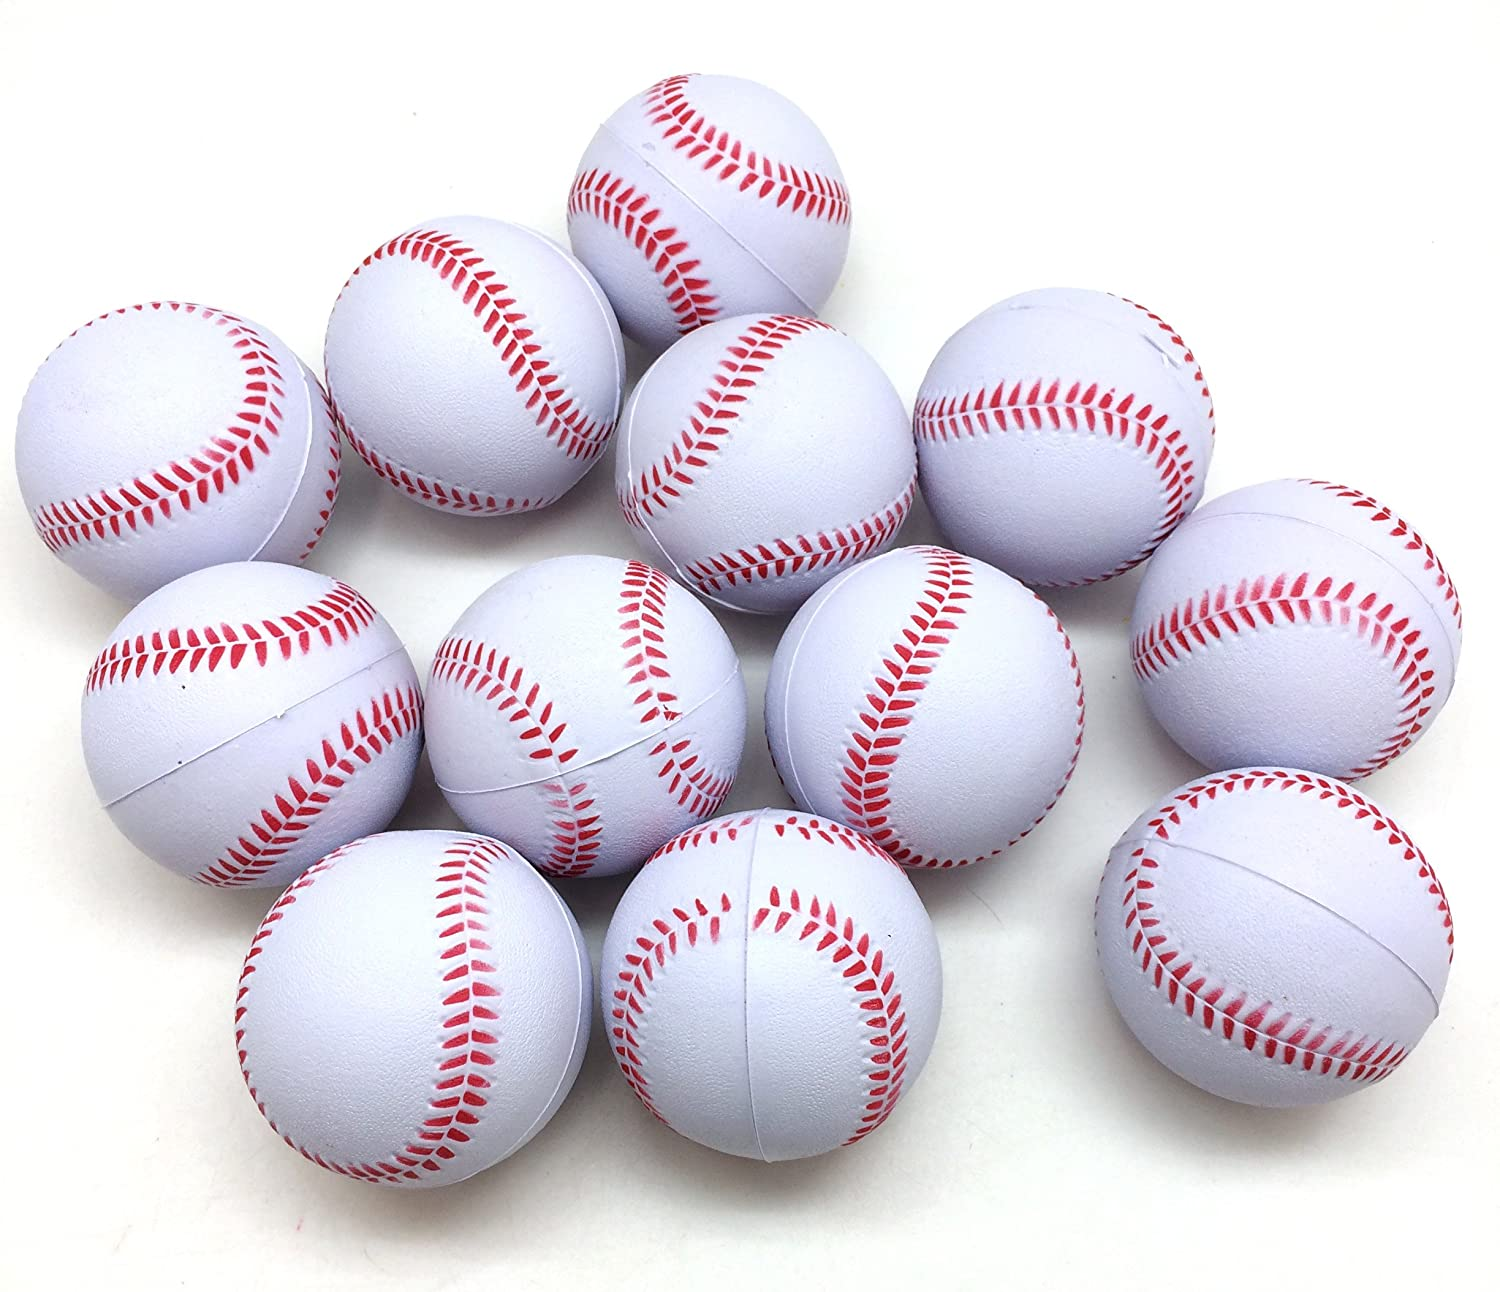 PEPPERLONELY 12PC//Pack White Baseball Sports Stress Ball Squeeze Balls for Stress Relief 3 Stocking Stuffers Ball Games and Prizes Party Favors